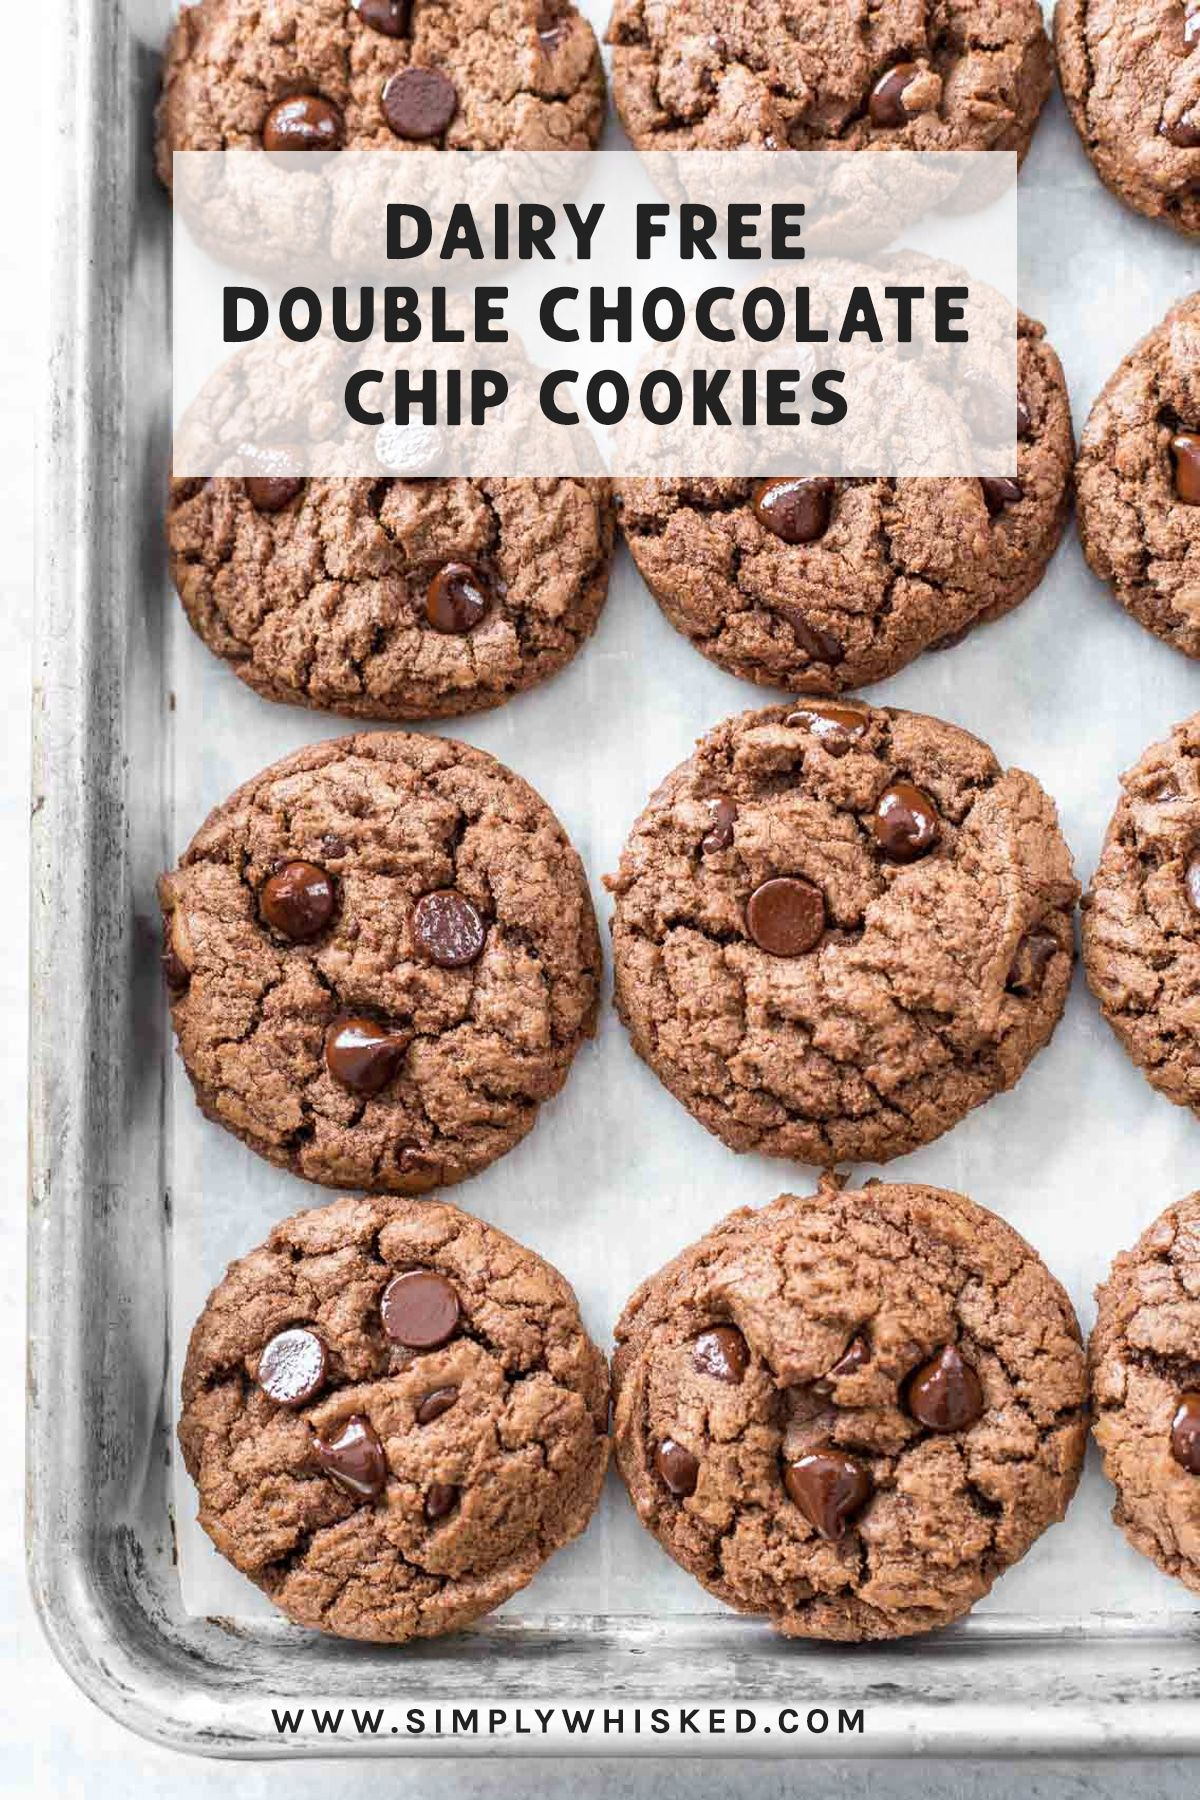 Chocolate Chocolate Chip Cookies | Recipe | Dairy free ...